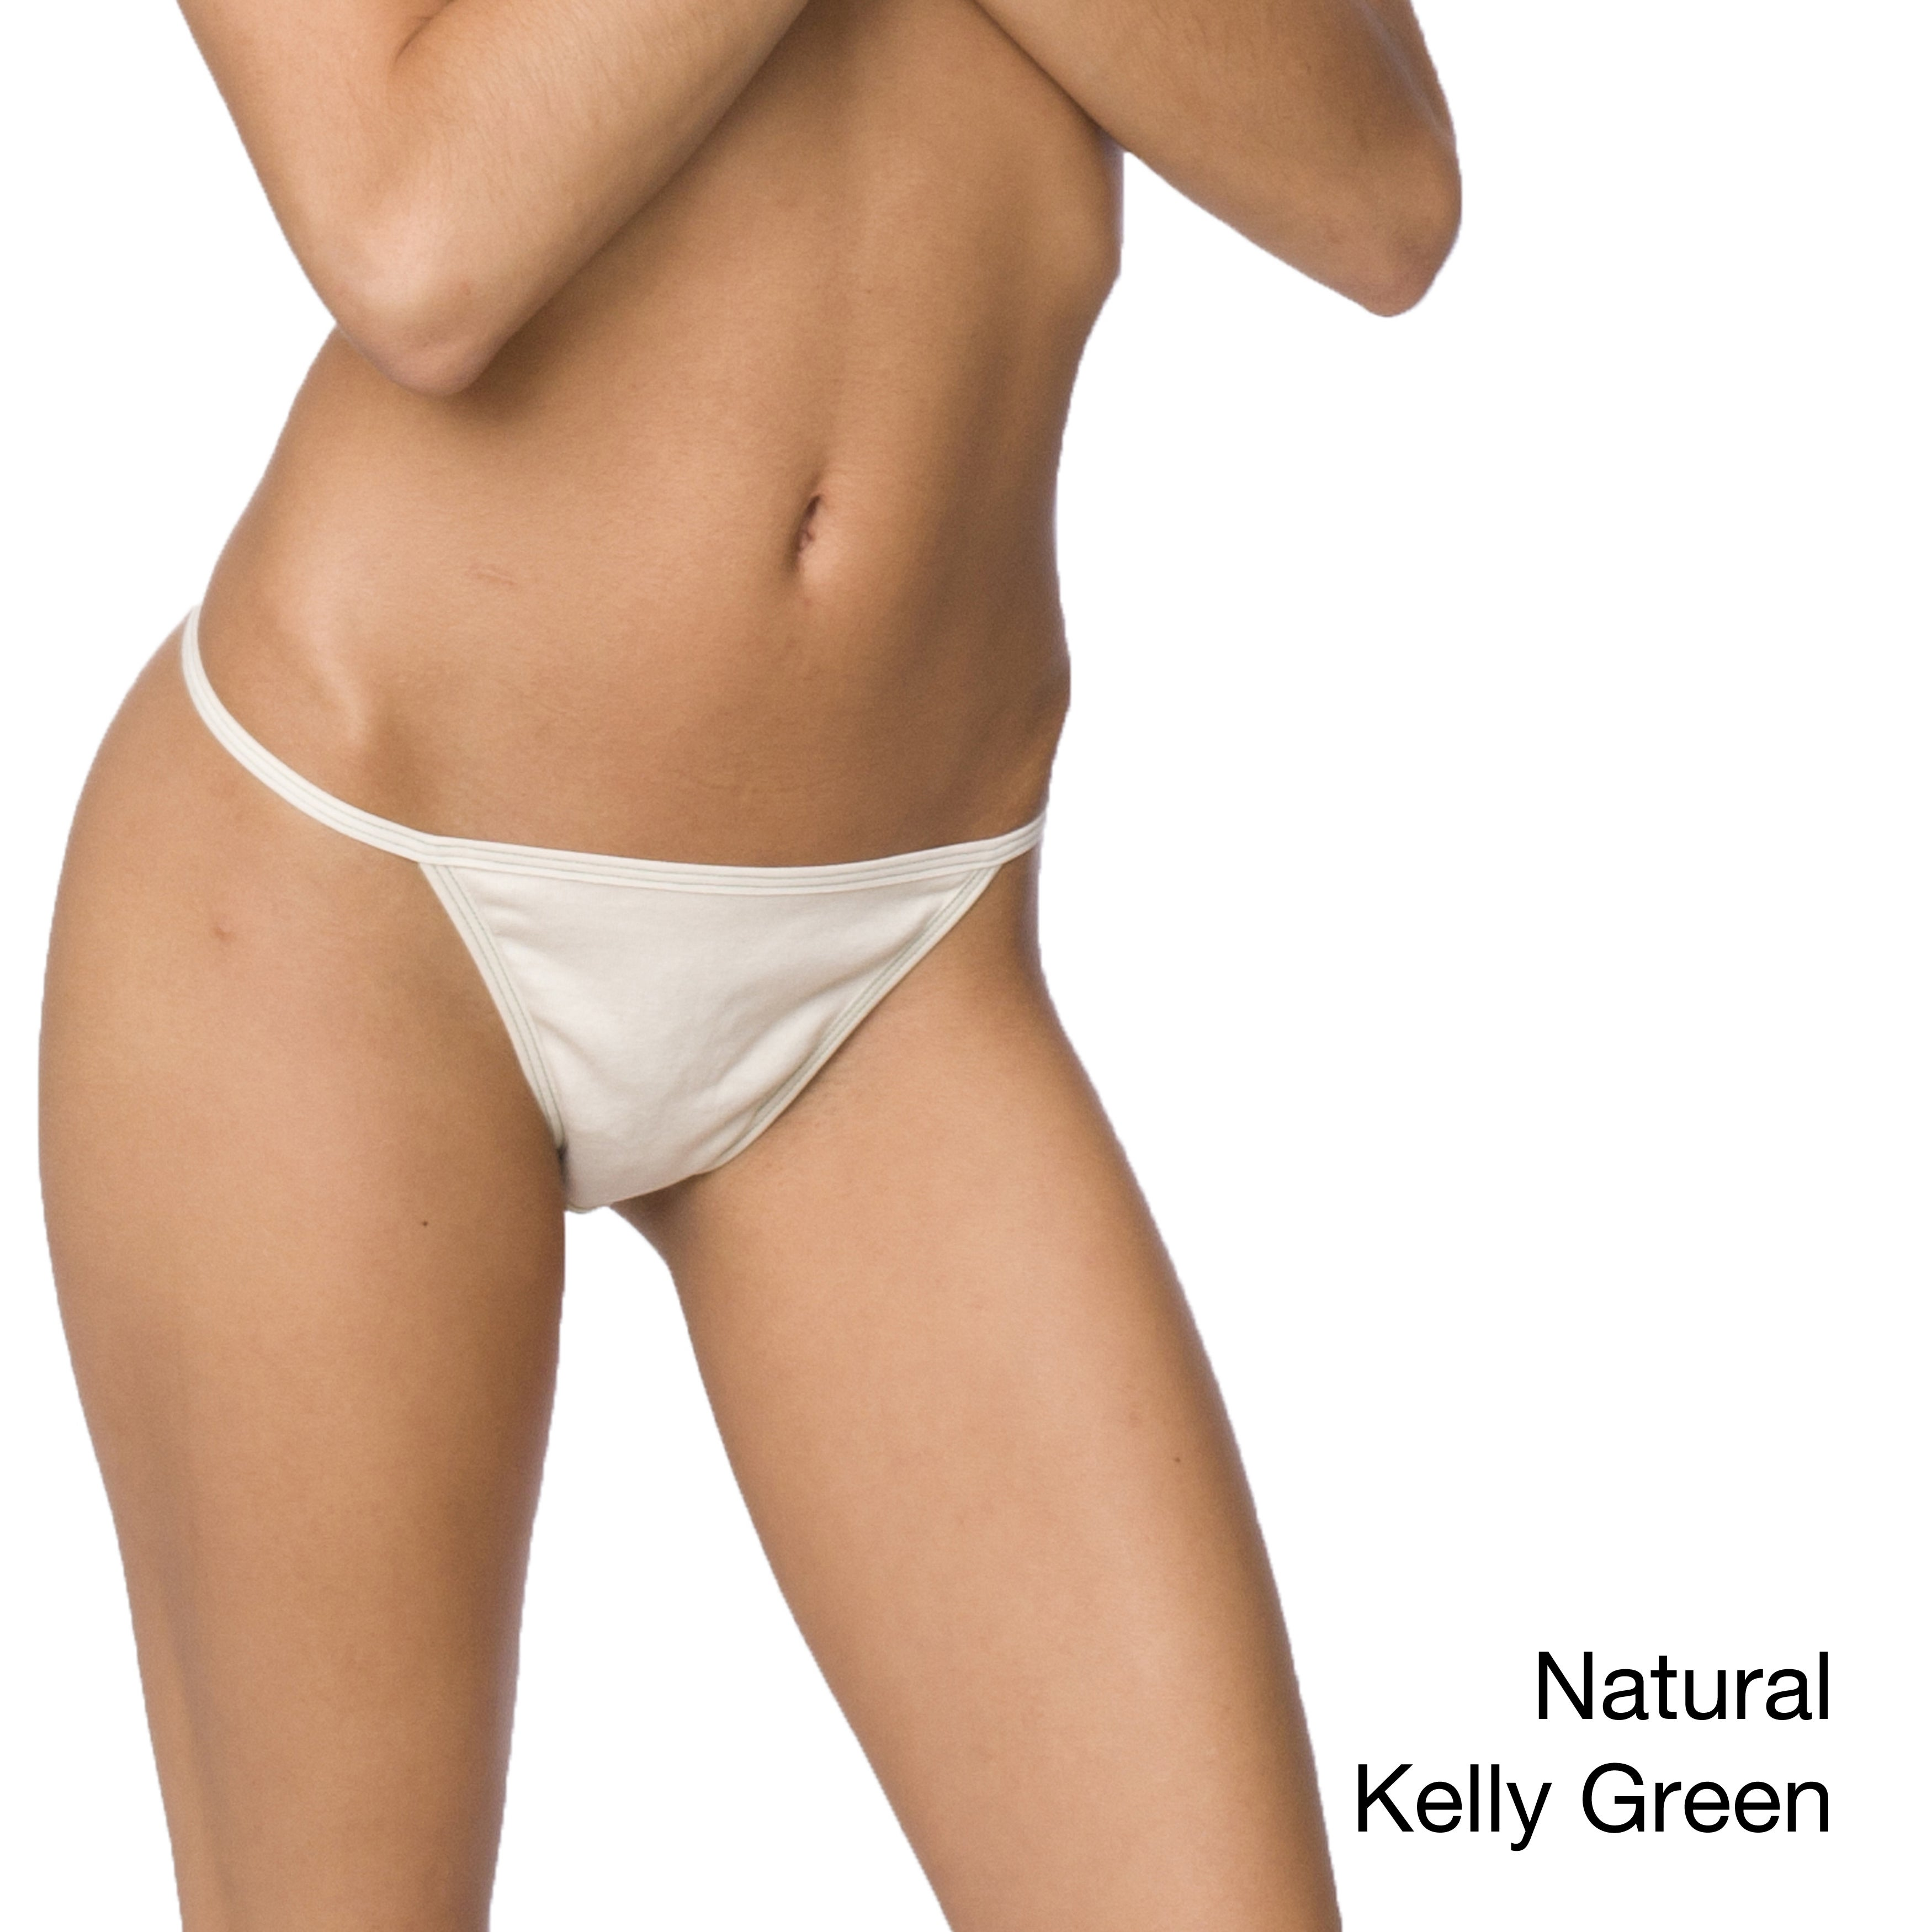 d1d6a19ef Shop American Apparel Women s Organic Baby Rib Thong - Free Shipping On  Orders Over  45 - Overstock - 6986650